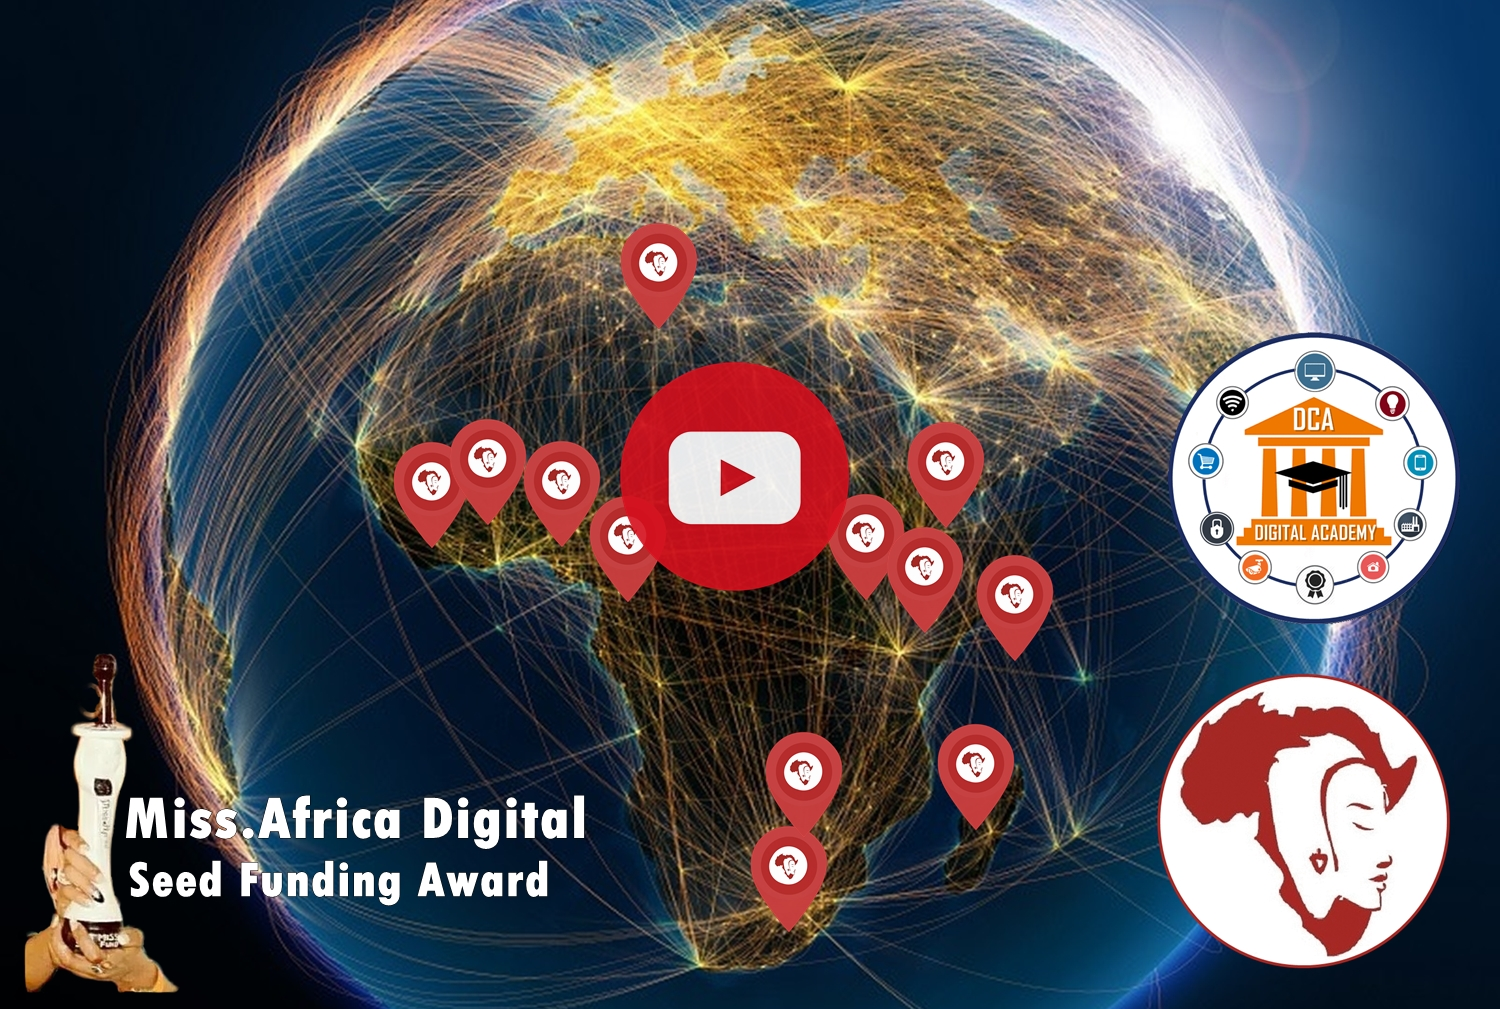 Miss.Africa Digital Seed Fund